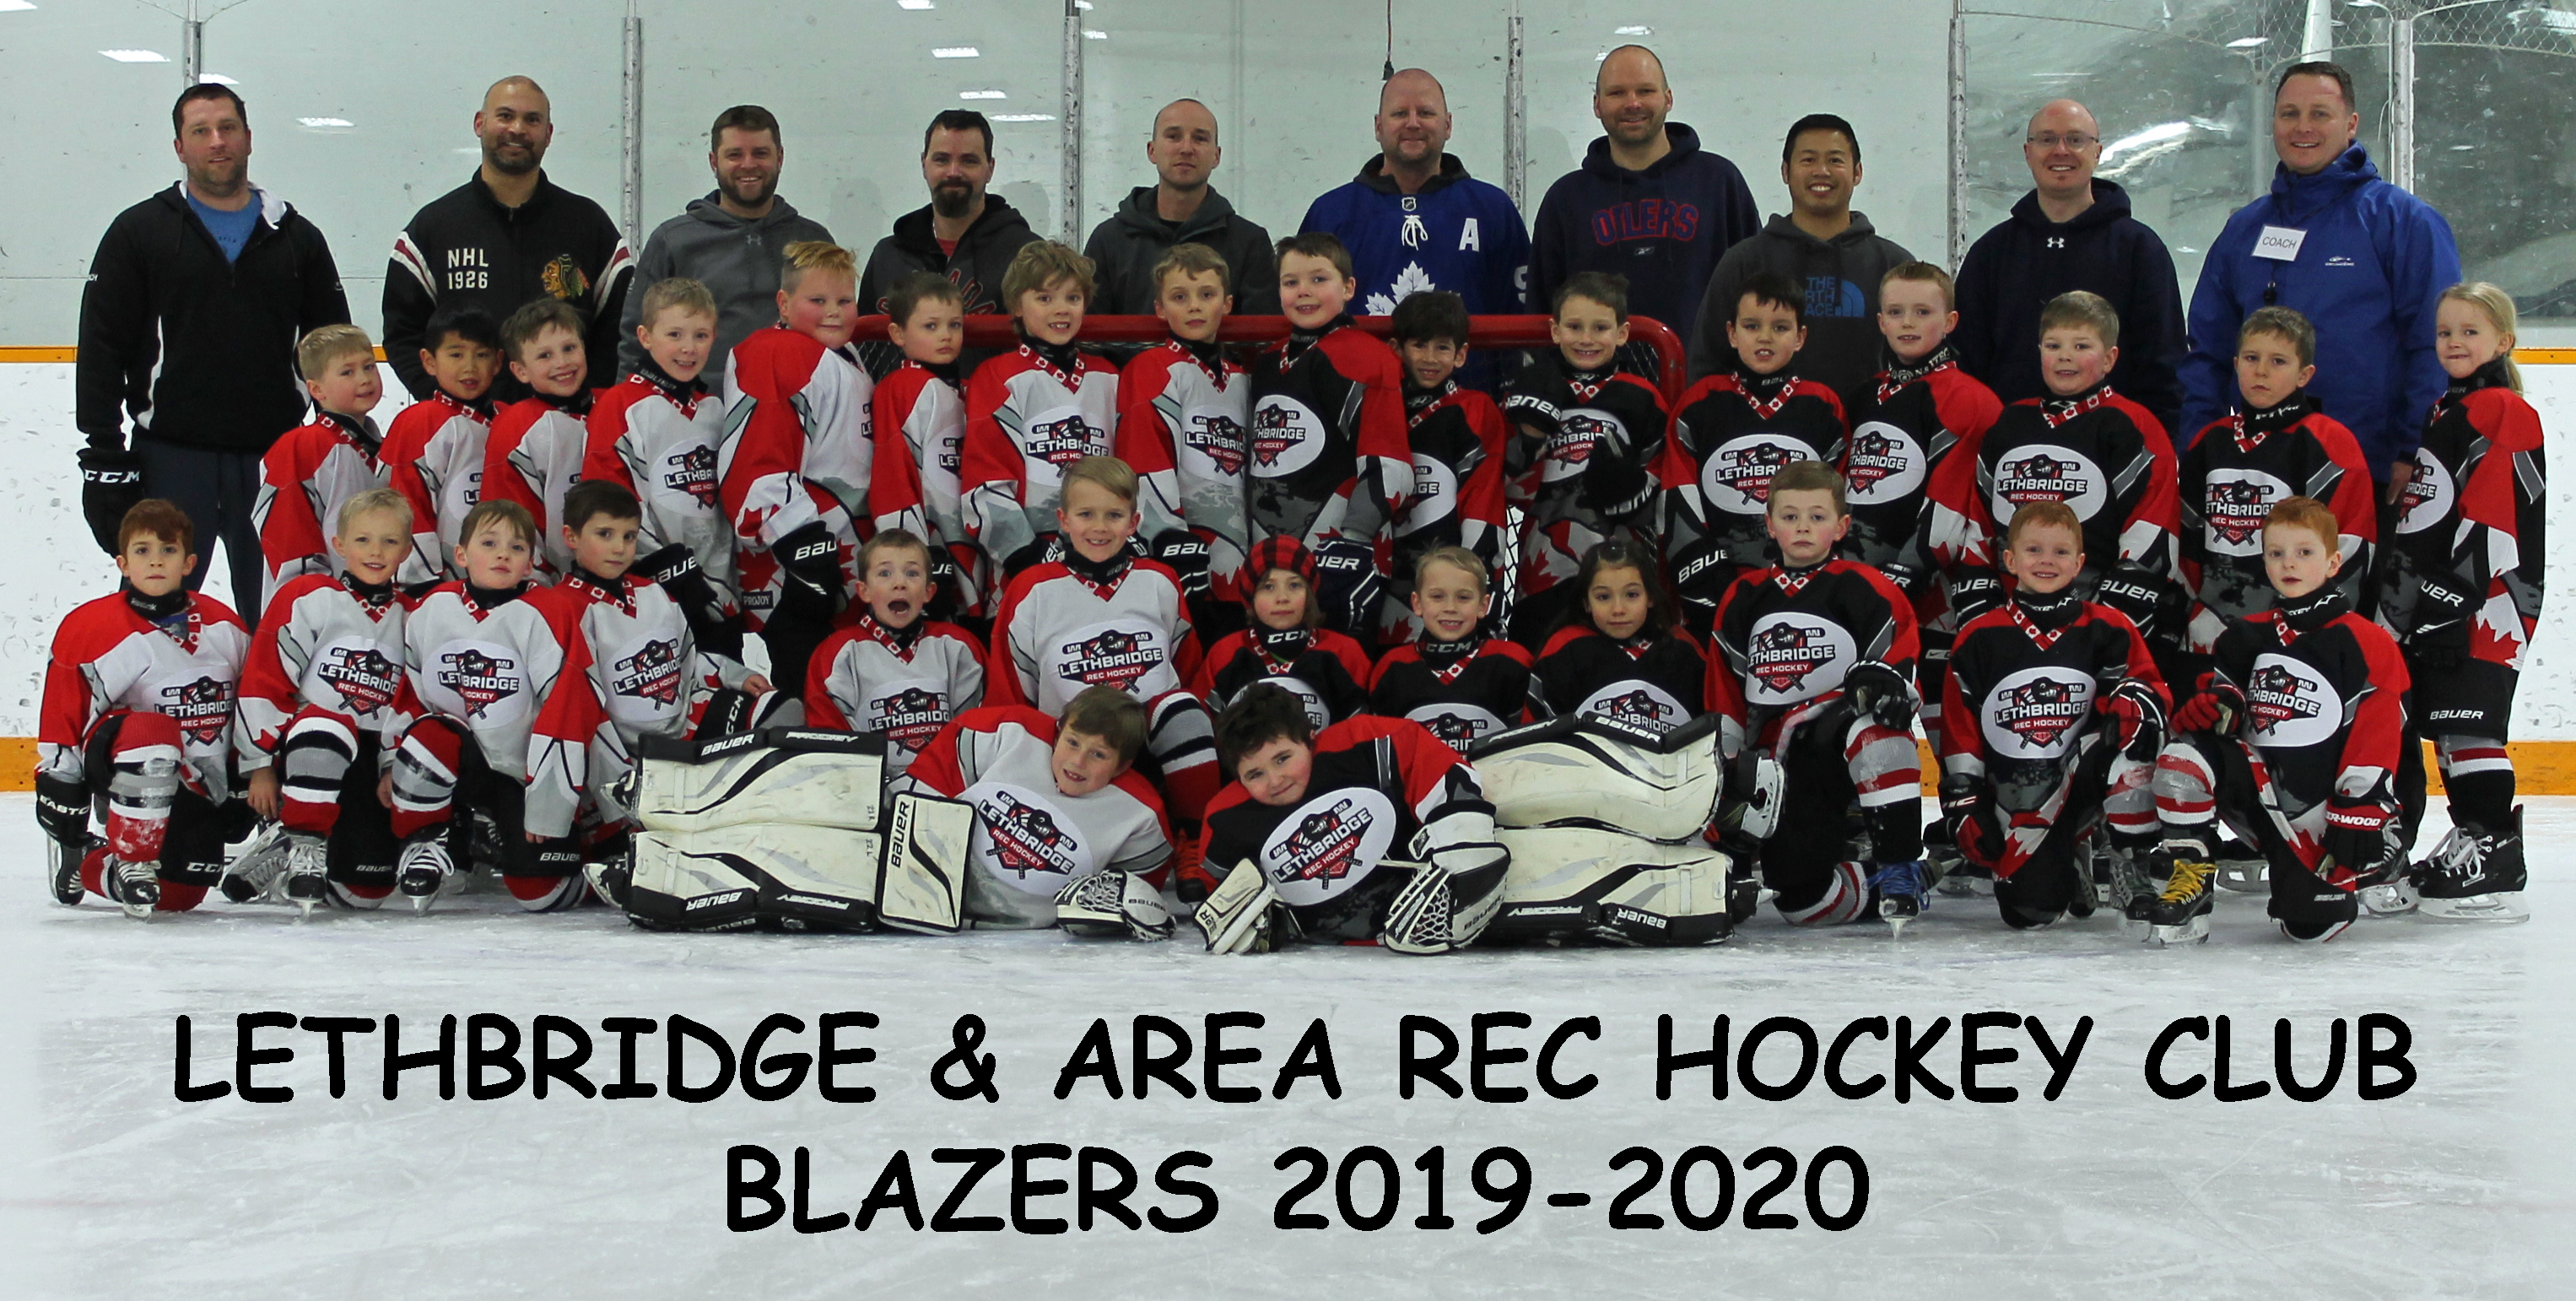 Blazers Group Photo 2019-20